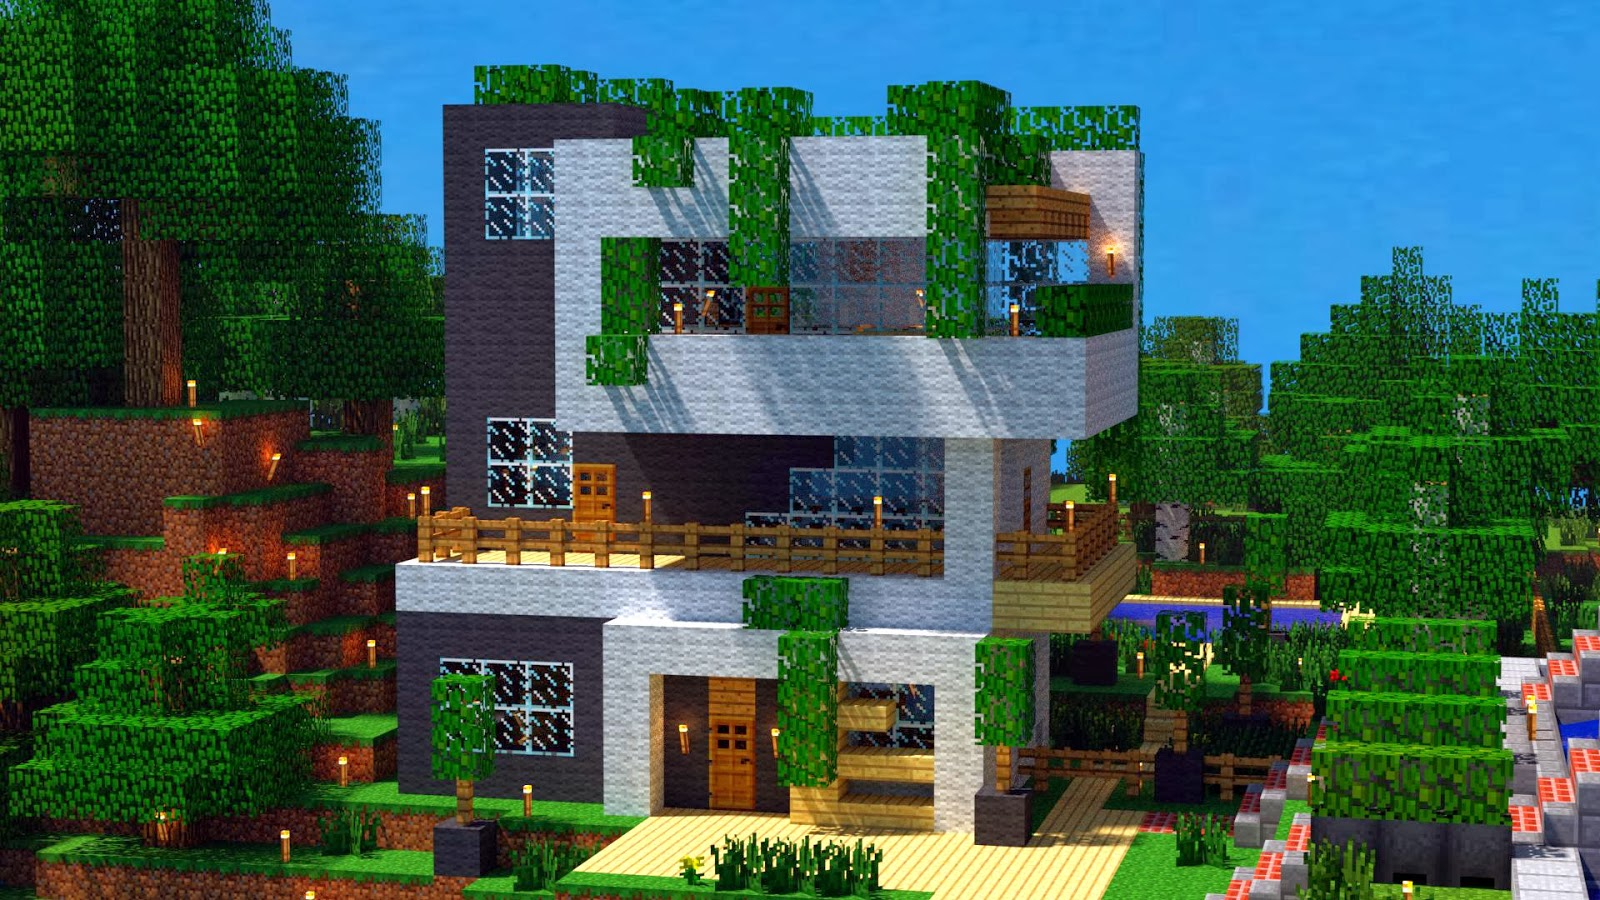 Meu mundo em tons past is games 2 minecraft for 3 4 houses in michigan